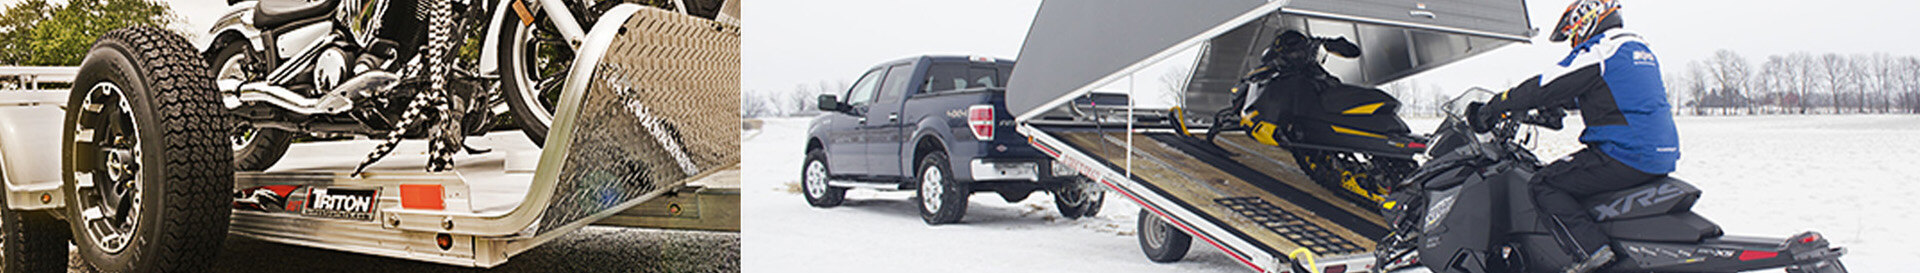 Triton Trailers | Factory Recreation | Midland Ontario